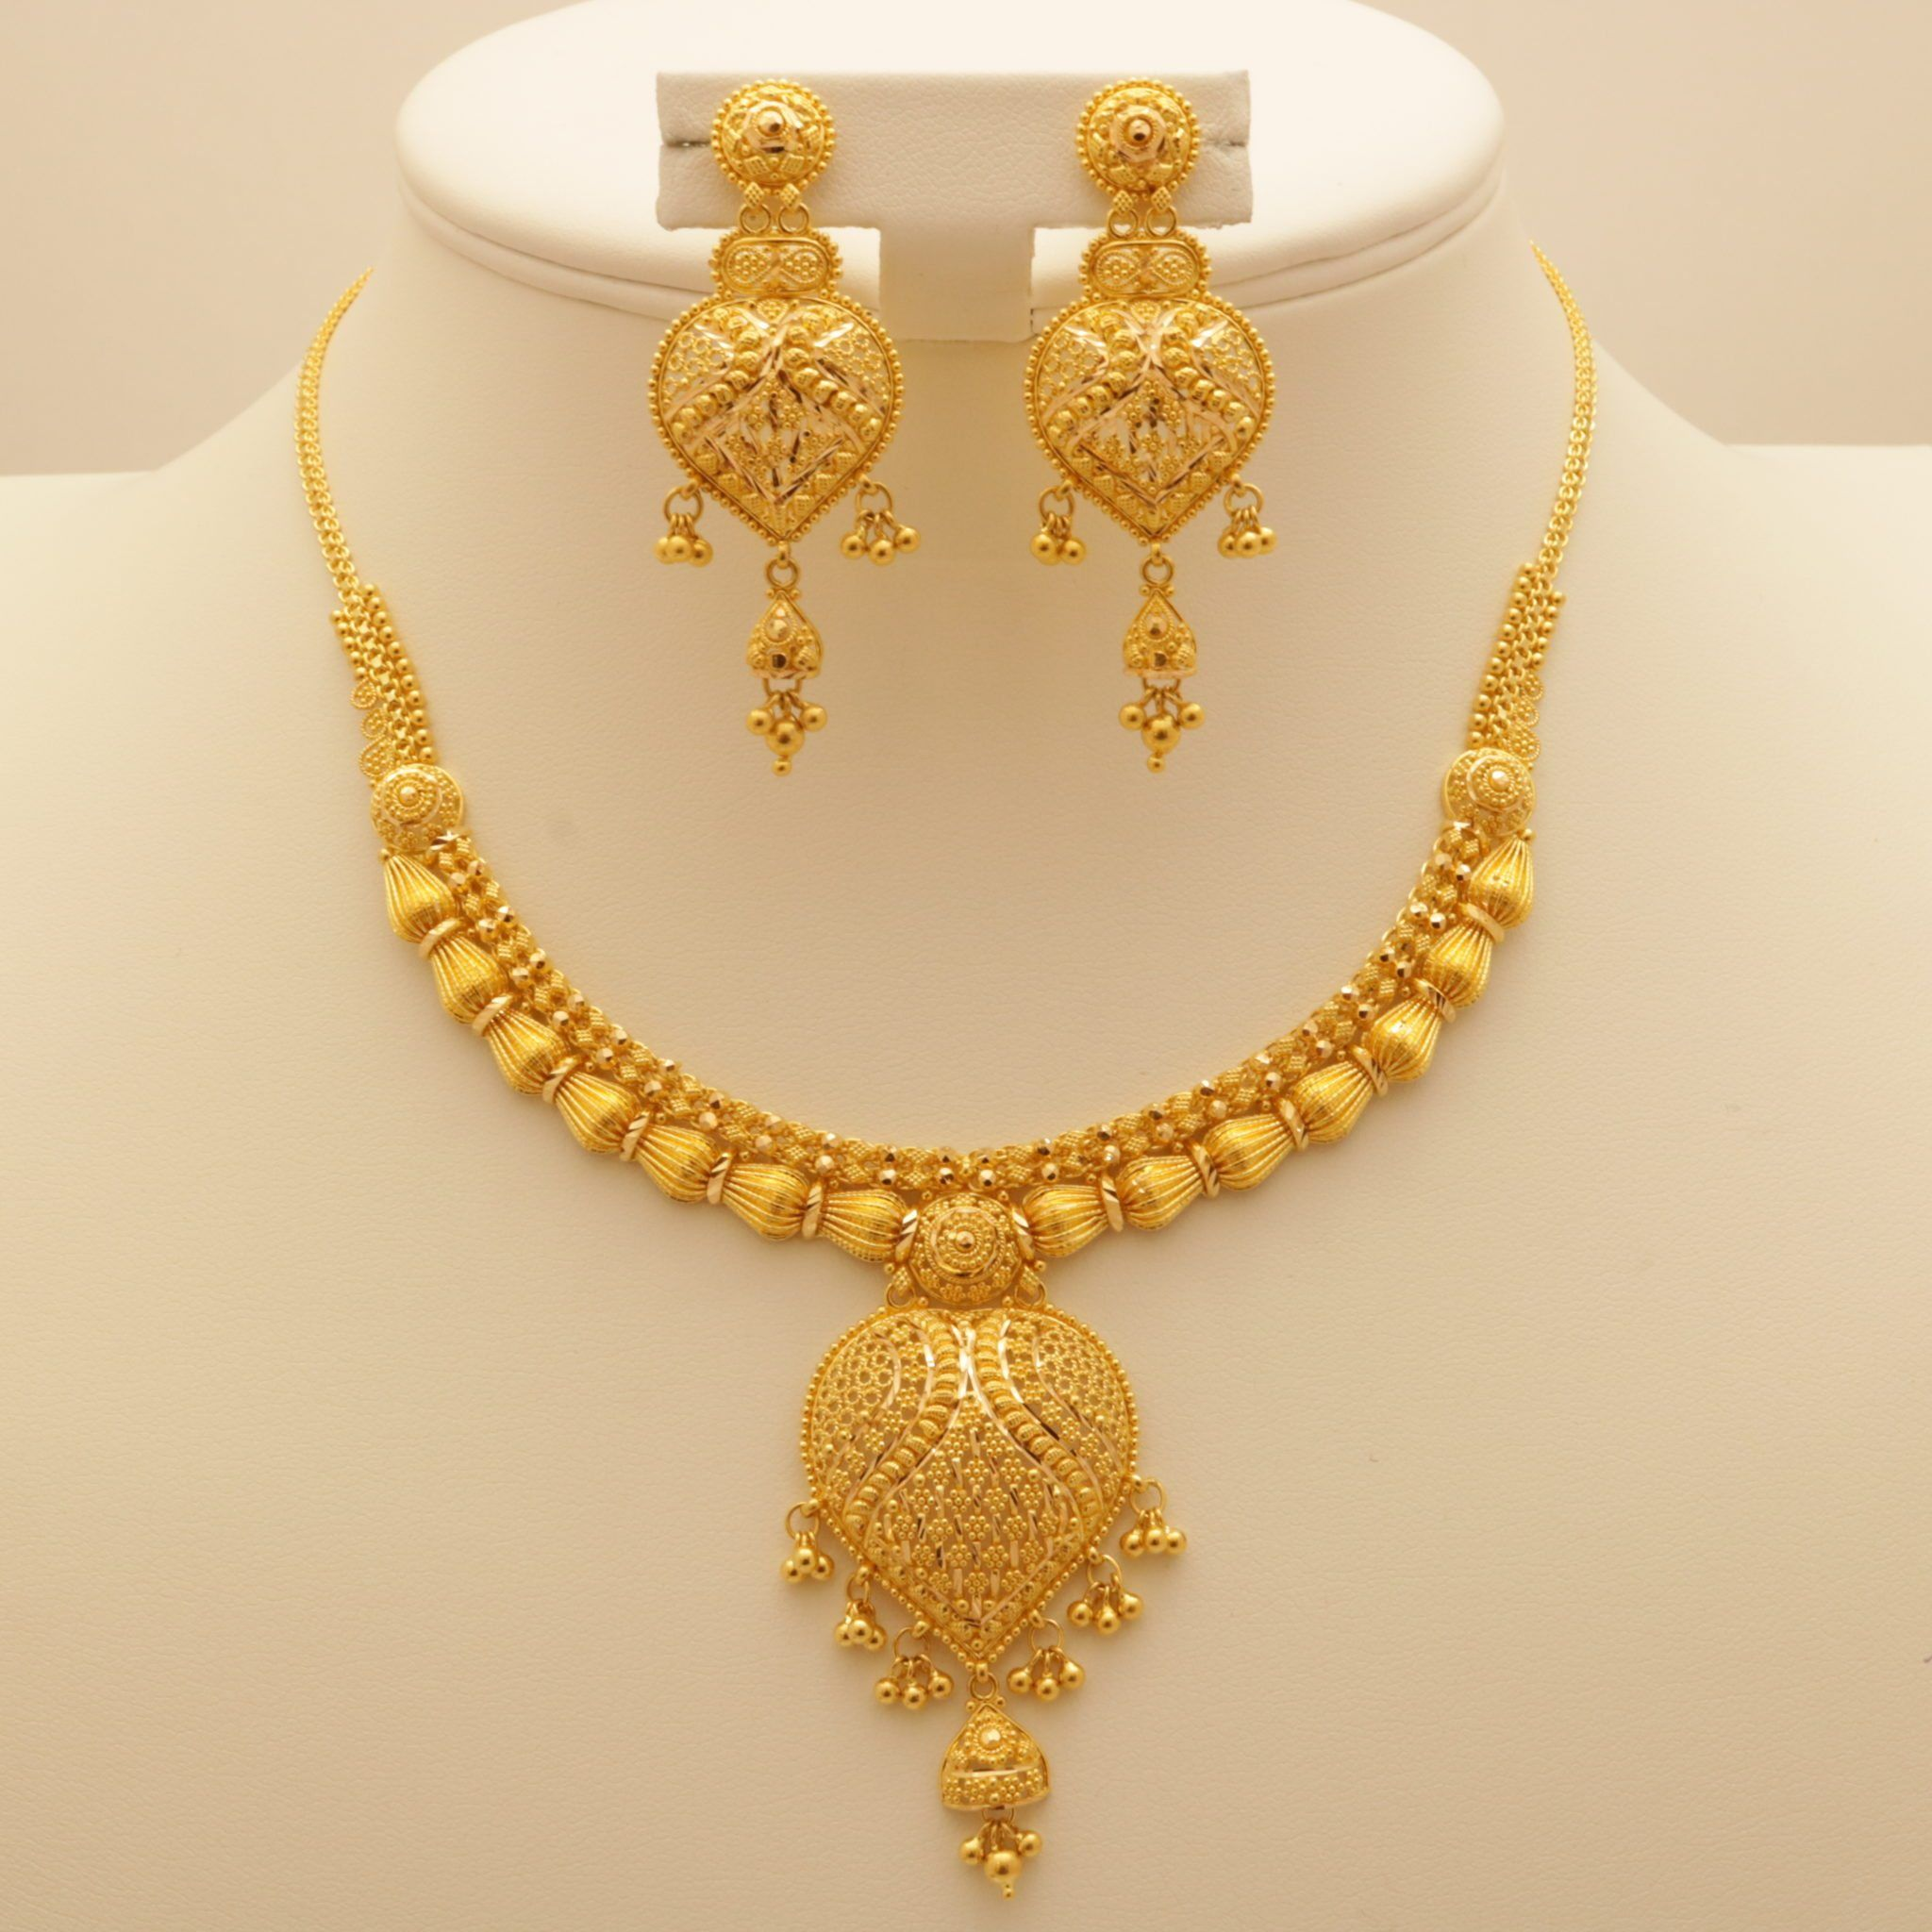 Related Image Gold Bridal Necklace Gold Necklace Designs Gold Jewellery Design Necklaces